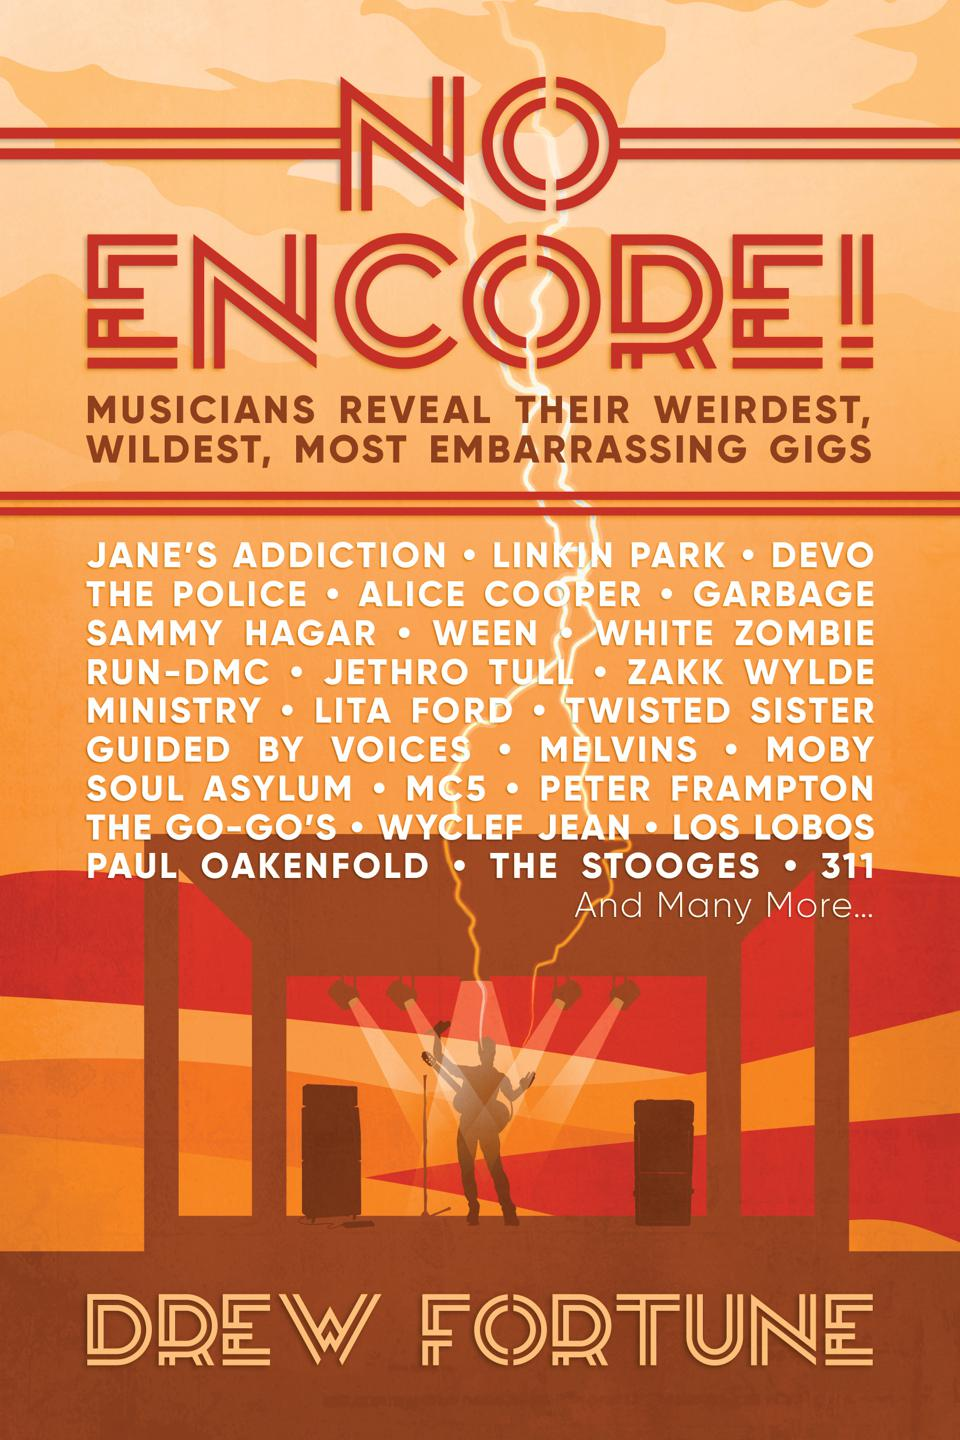 Cover of 'No Encore!' book by Drew Fortune.